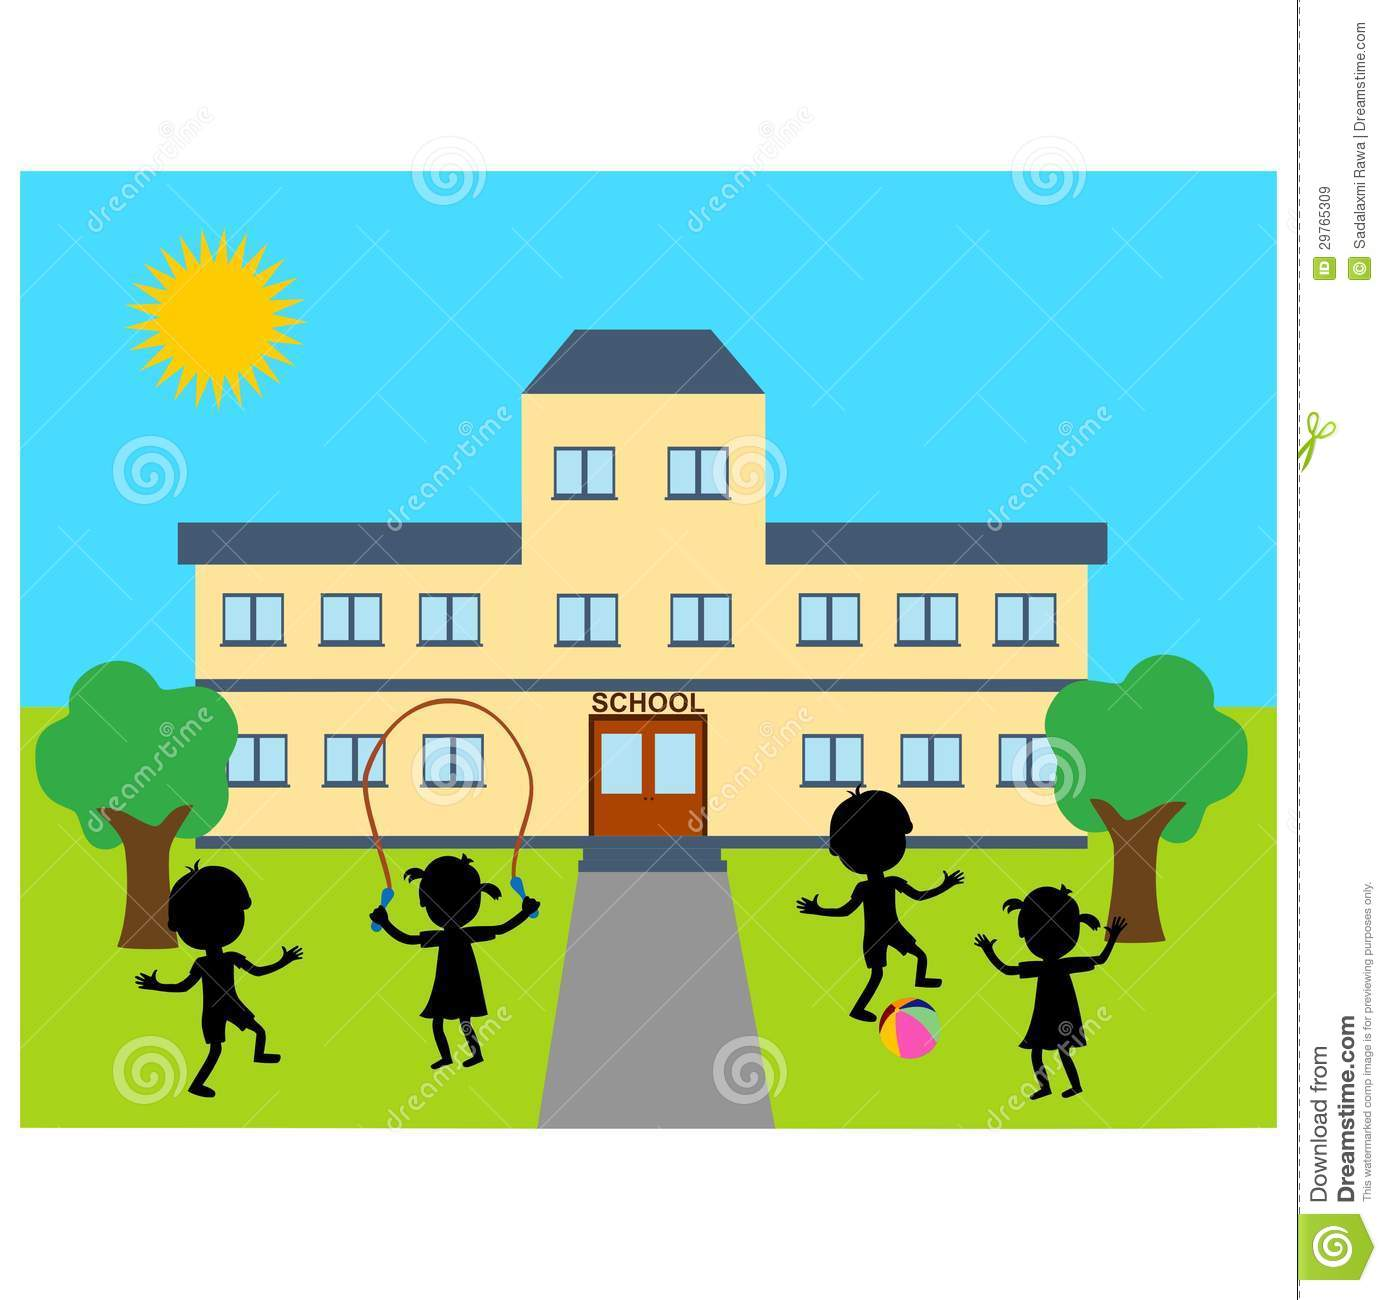 School Building Clipart Illustration School Building Children Playing